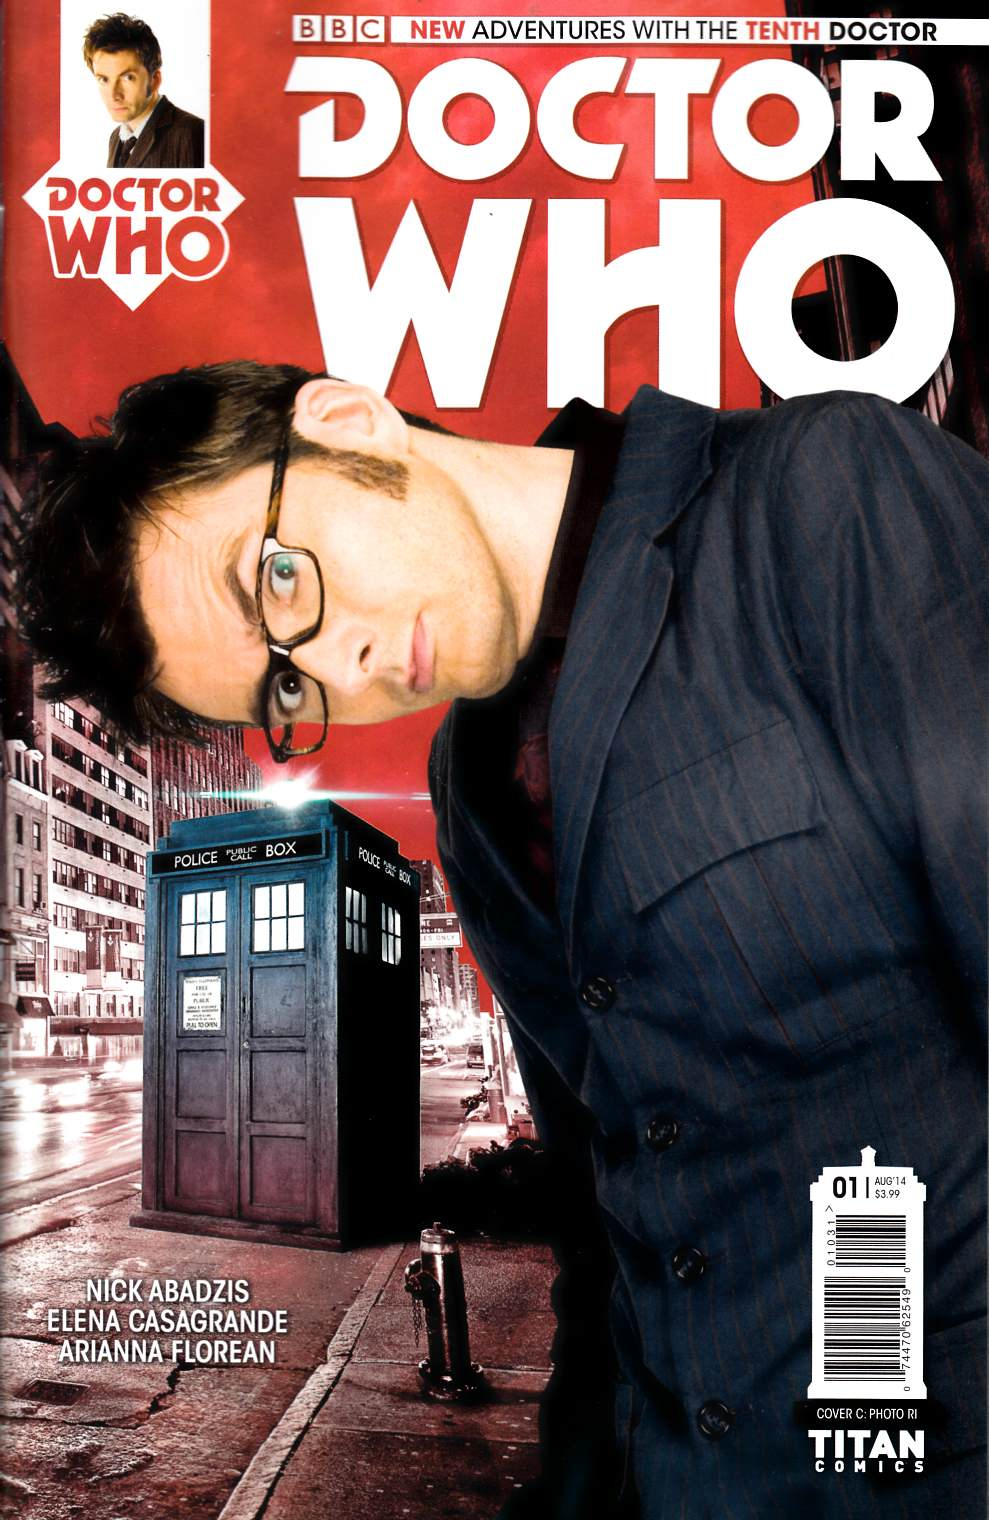 Doctor Who 10th Doctor #1 Photo Incentive Cover [Comic]